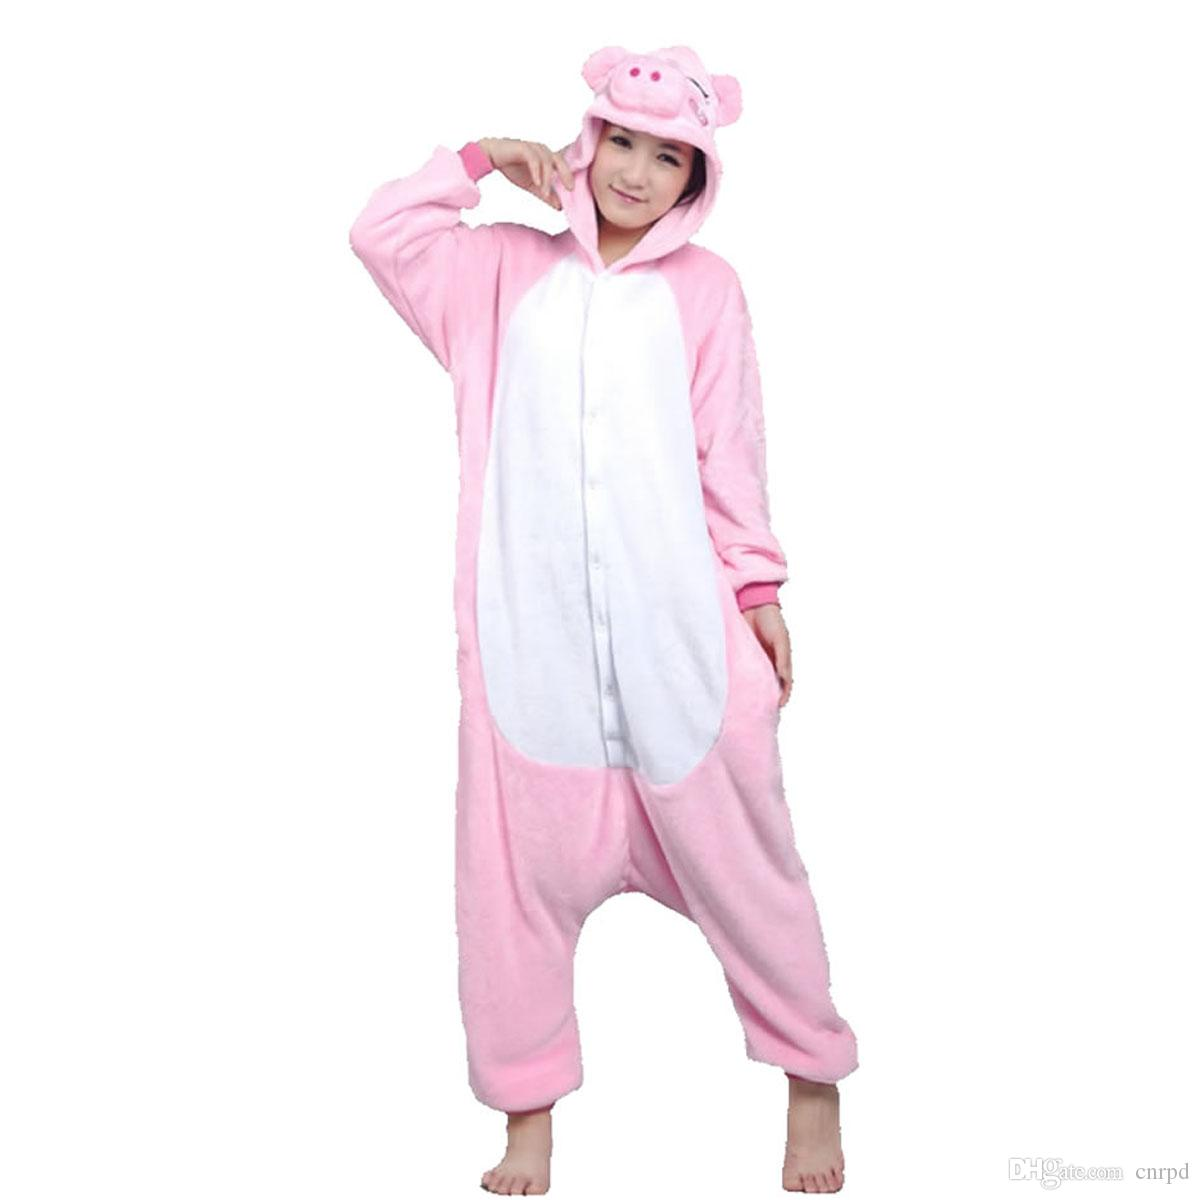 ba8e19e57 Lovers Pig Unisex Adults Flannel Hooded Onesies Pajamas Cosplay Cartoon  Animal Sleepwear For Women Men Women Halloween Costumes Cosplay Anime From  Cnrpd, ...